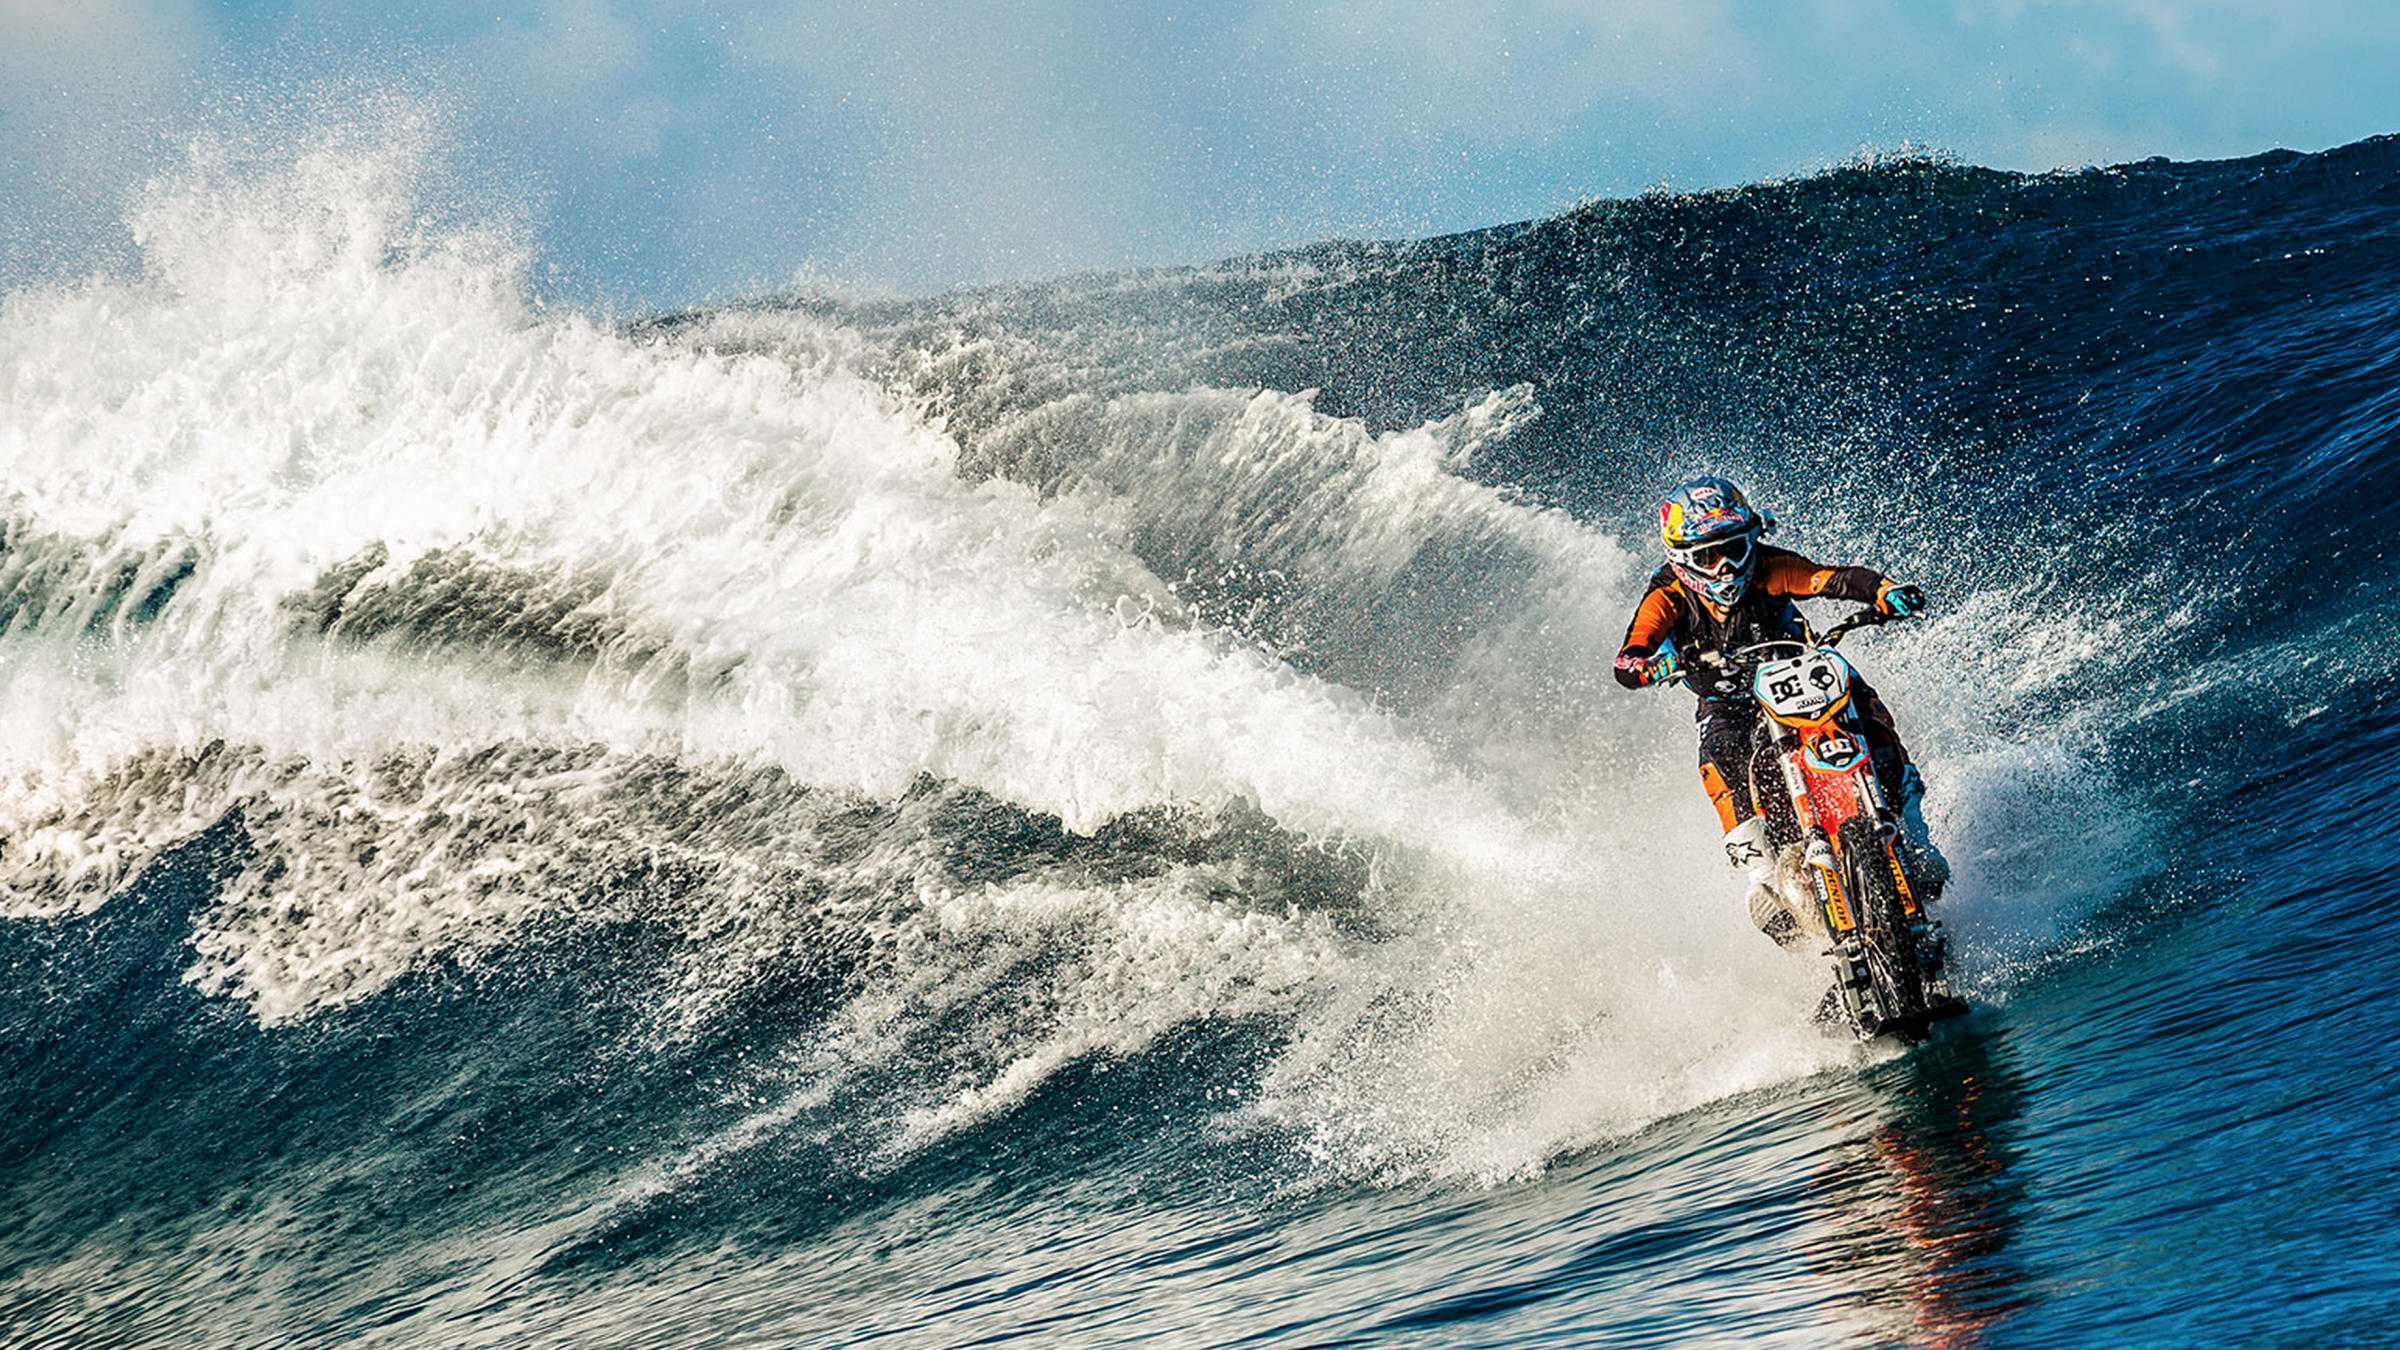 How To Surf An Ocean Wave With A Dirt Bike The